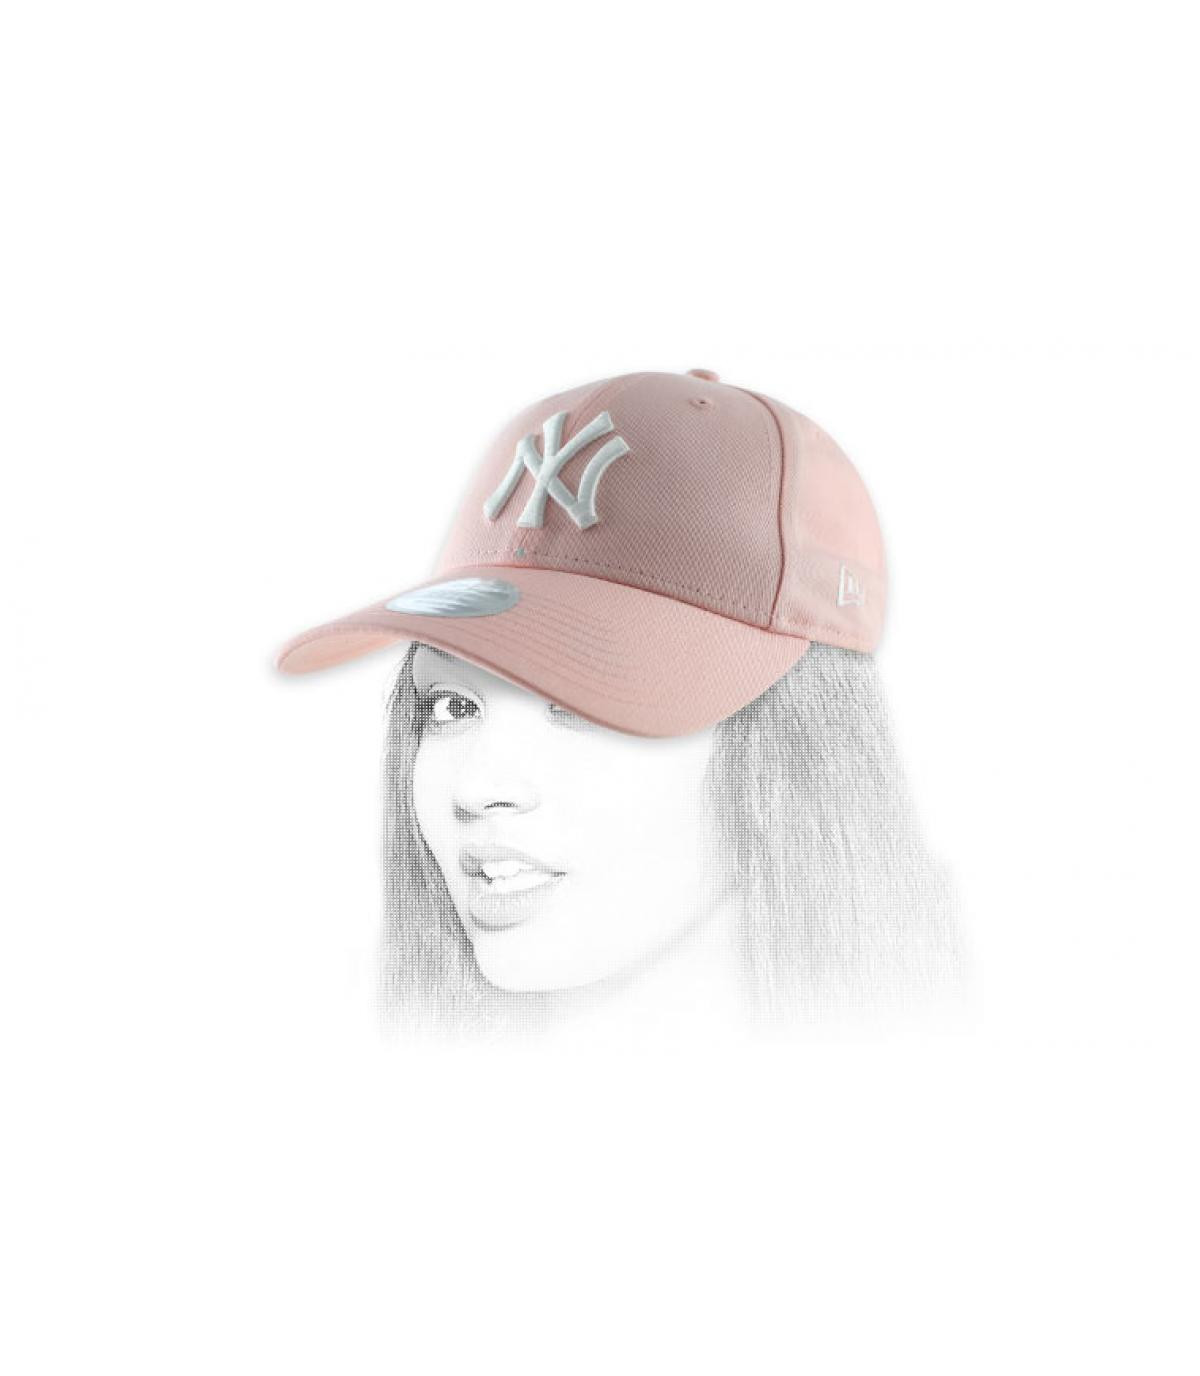 casquette femme NY rose